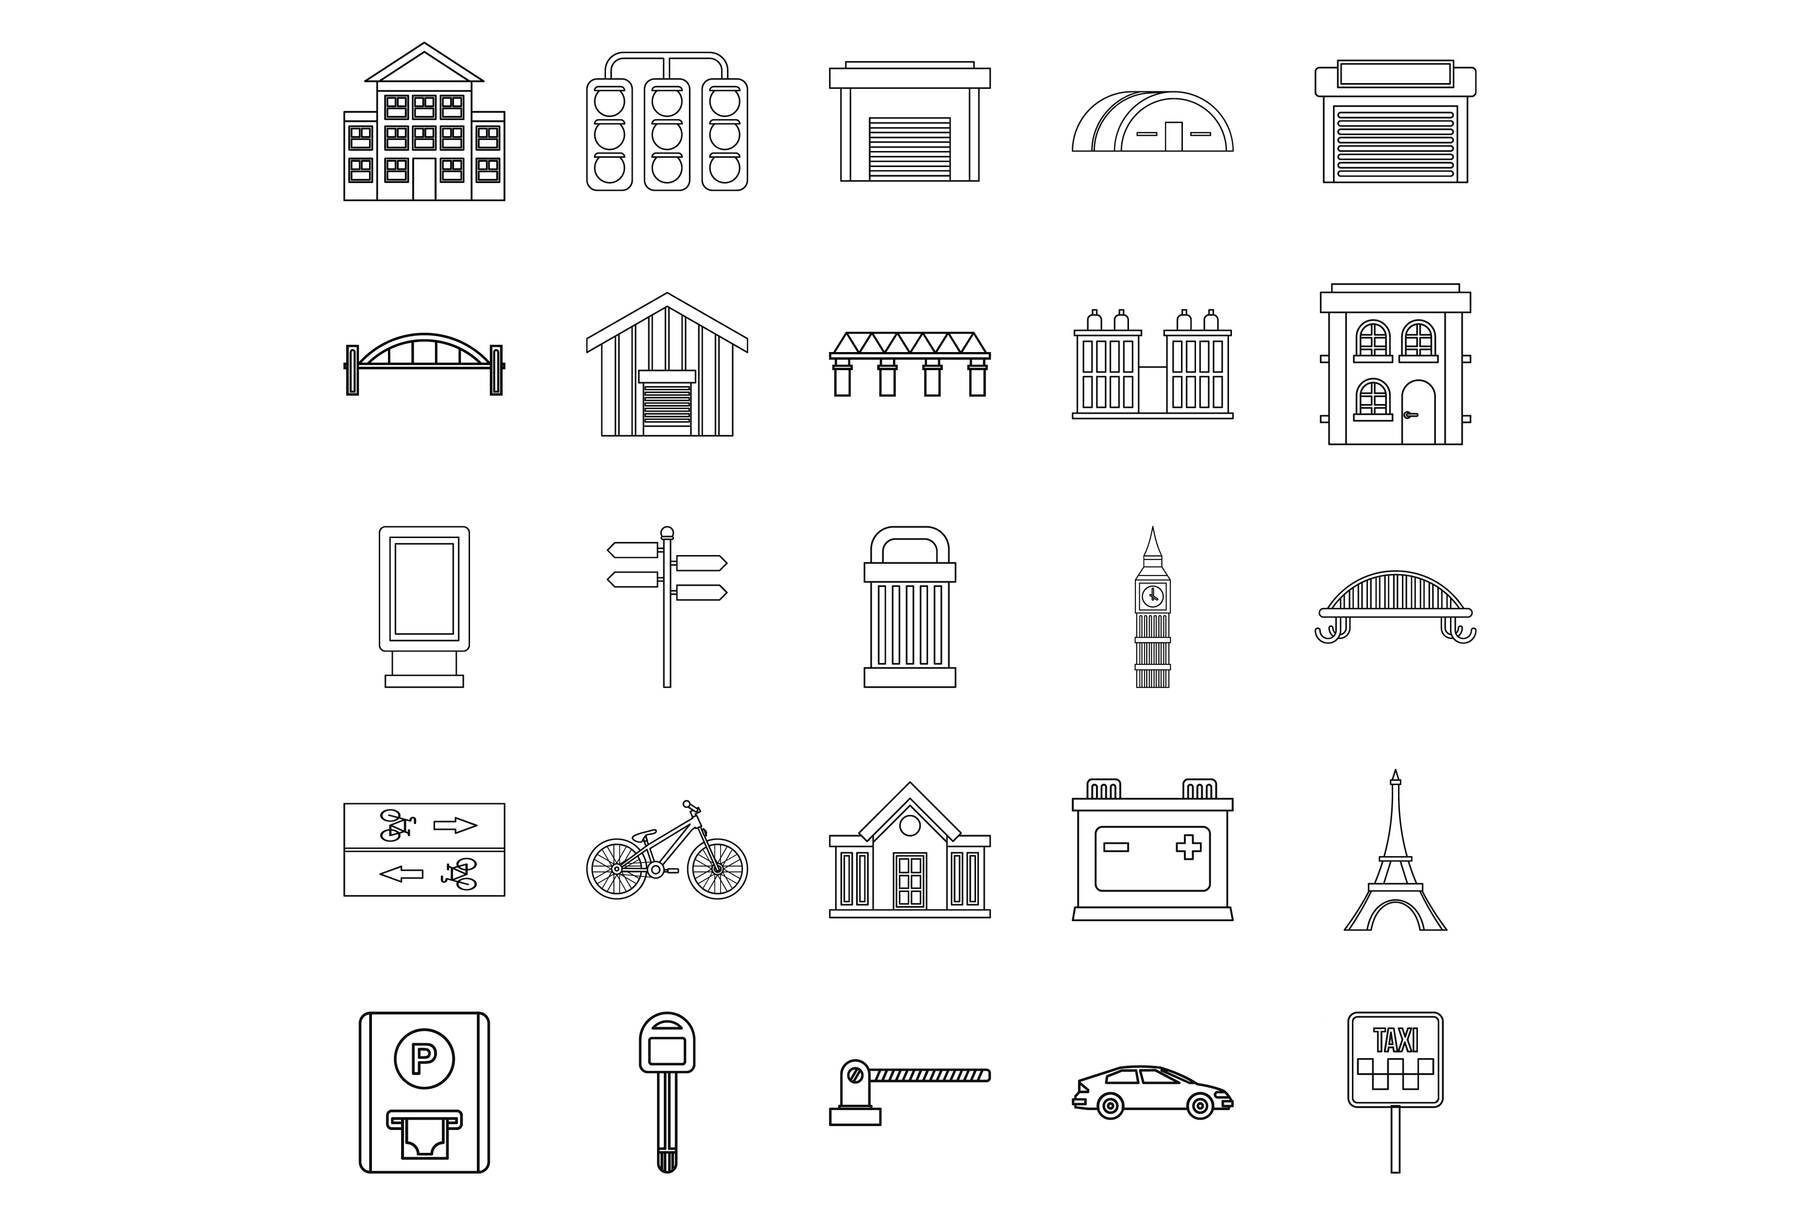 Road signs icons set, outline style example image 1